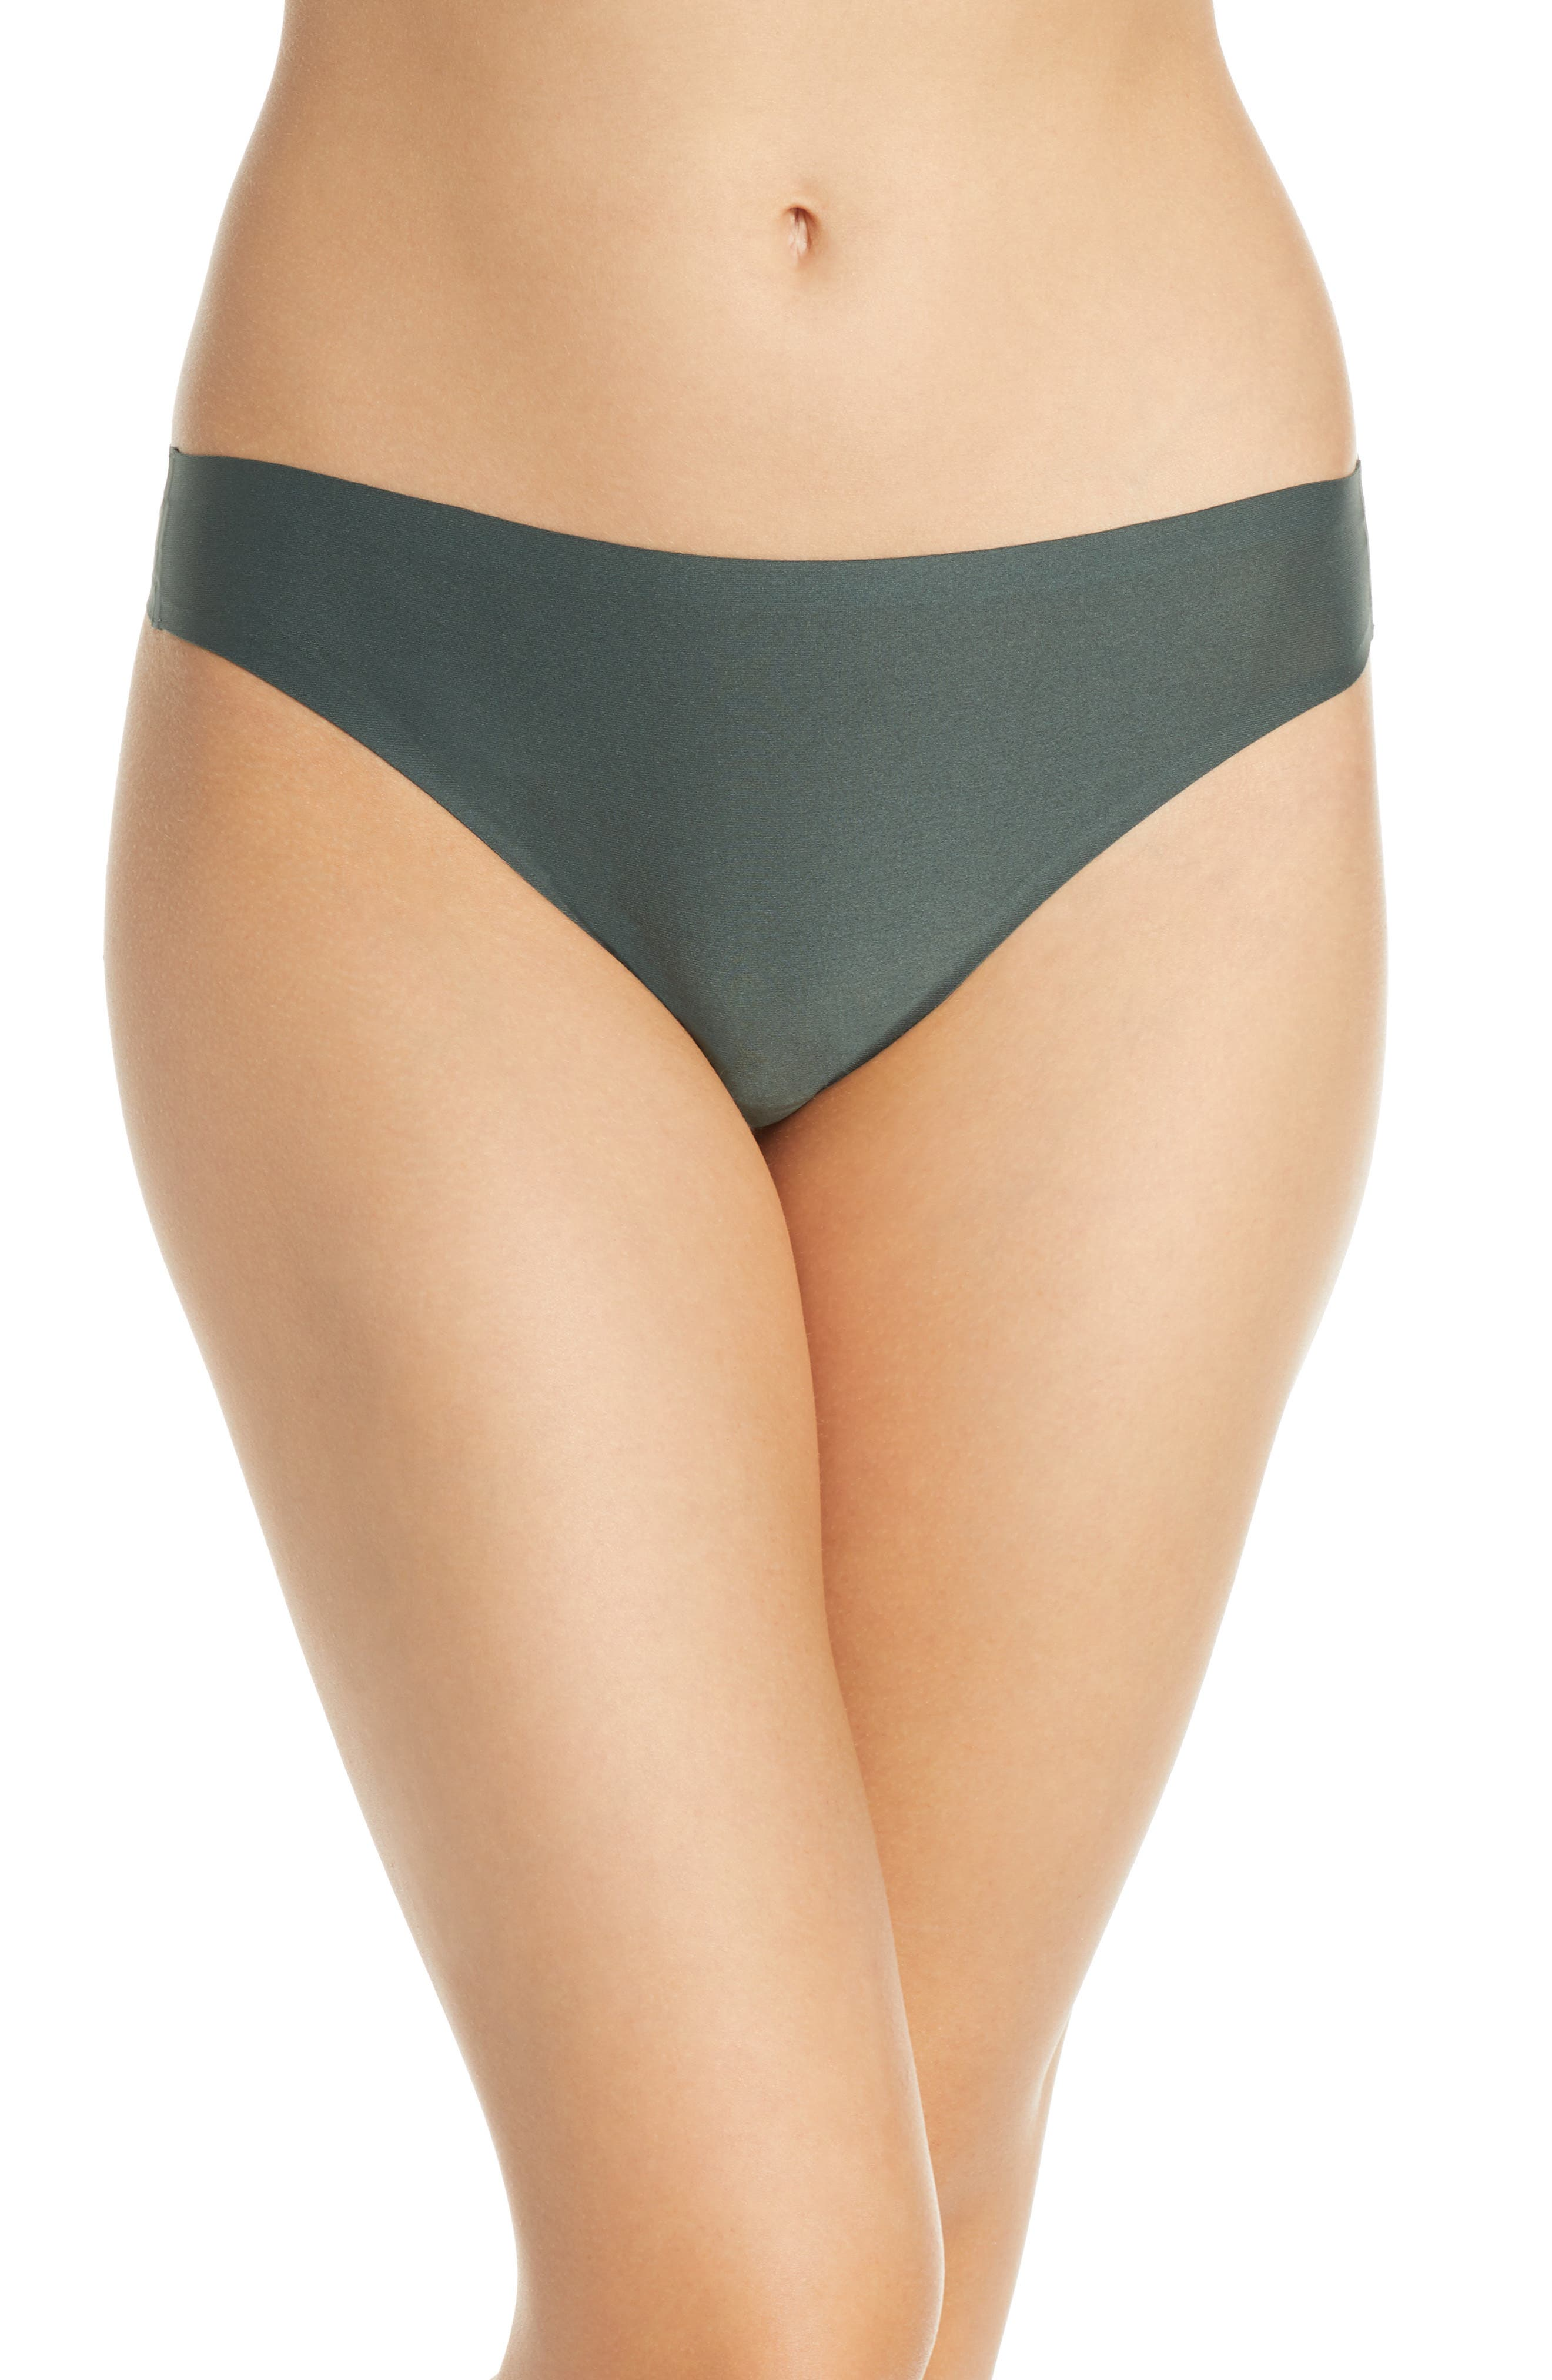 Chantelle Lingerie Soft Stretch Seamless Thong (Any 3 for $40)